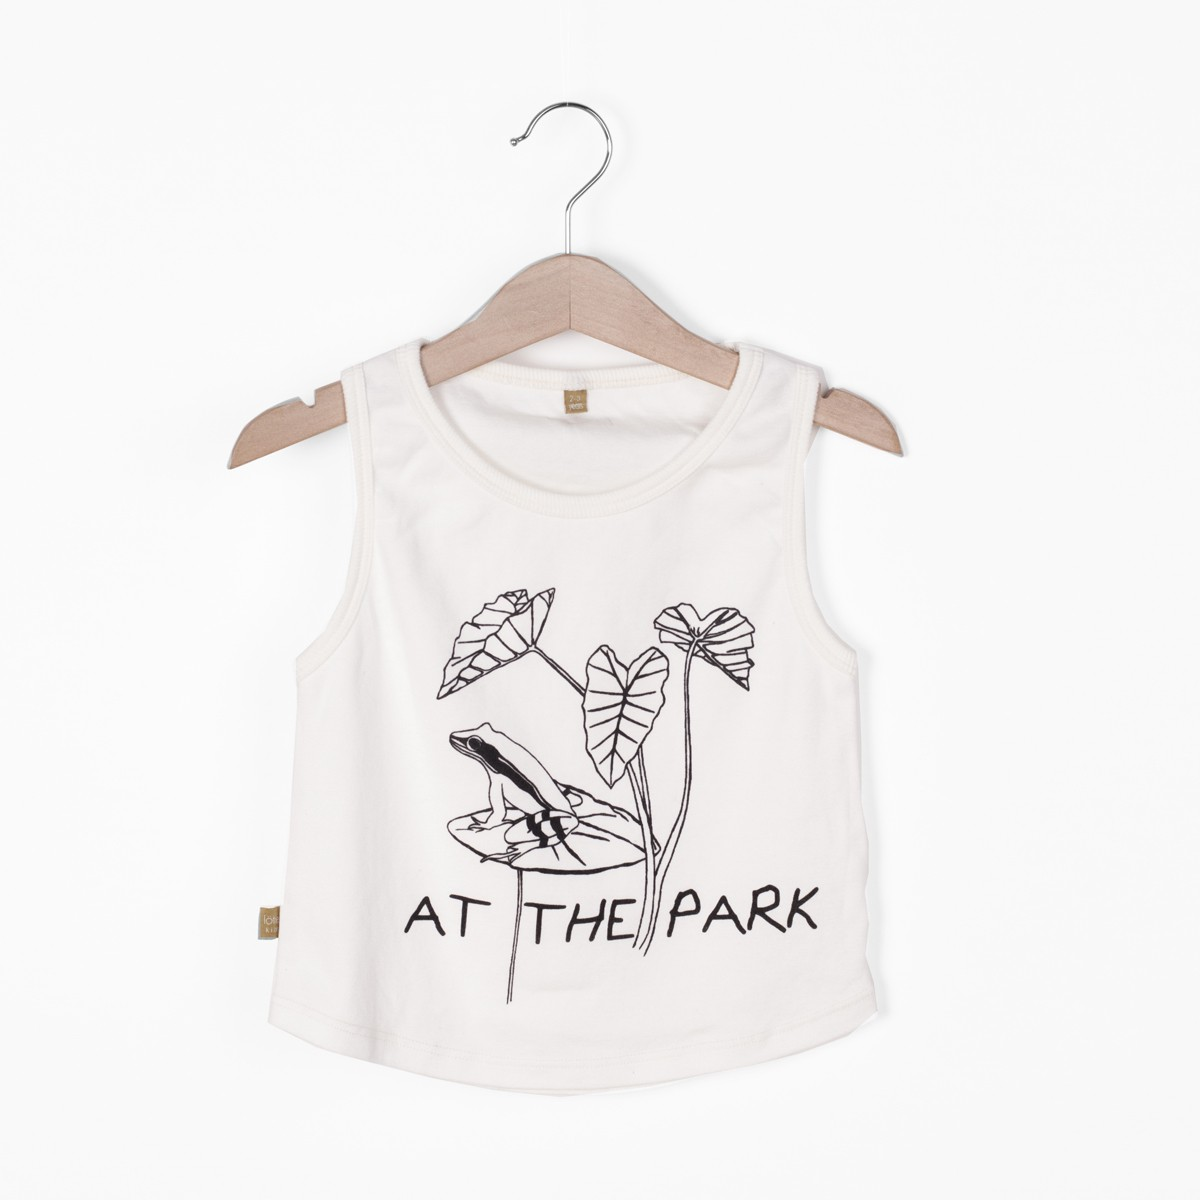 Tanktop at the park